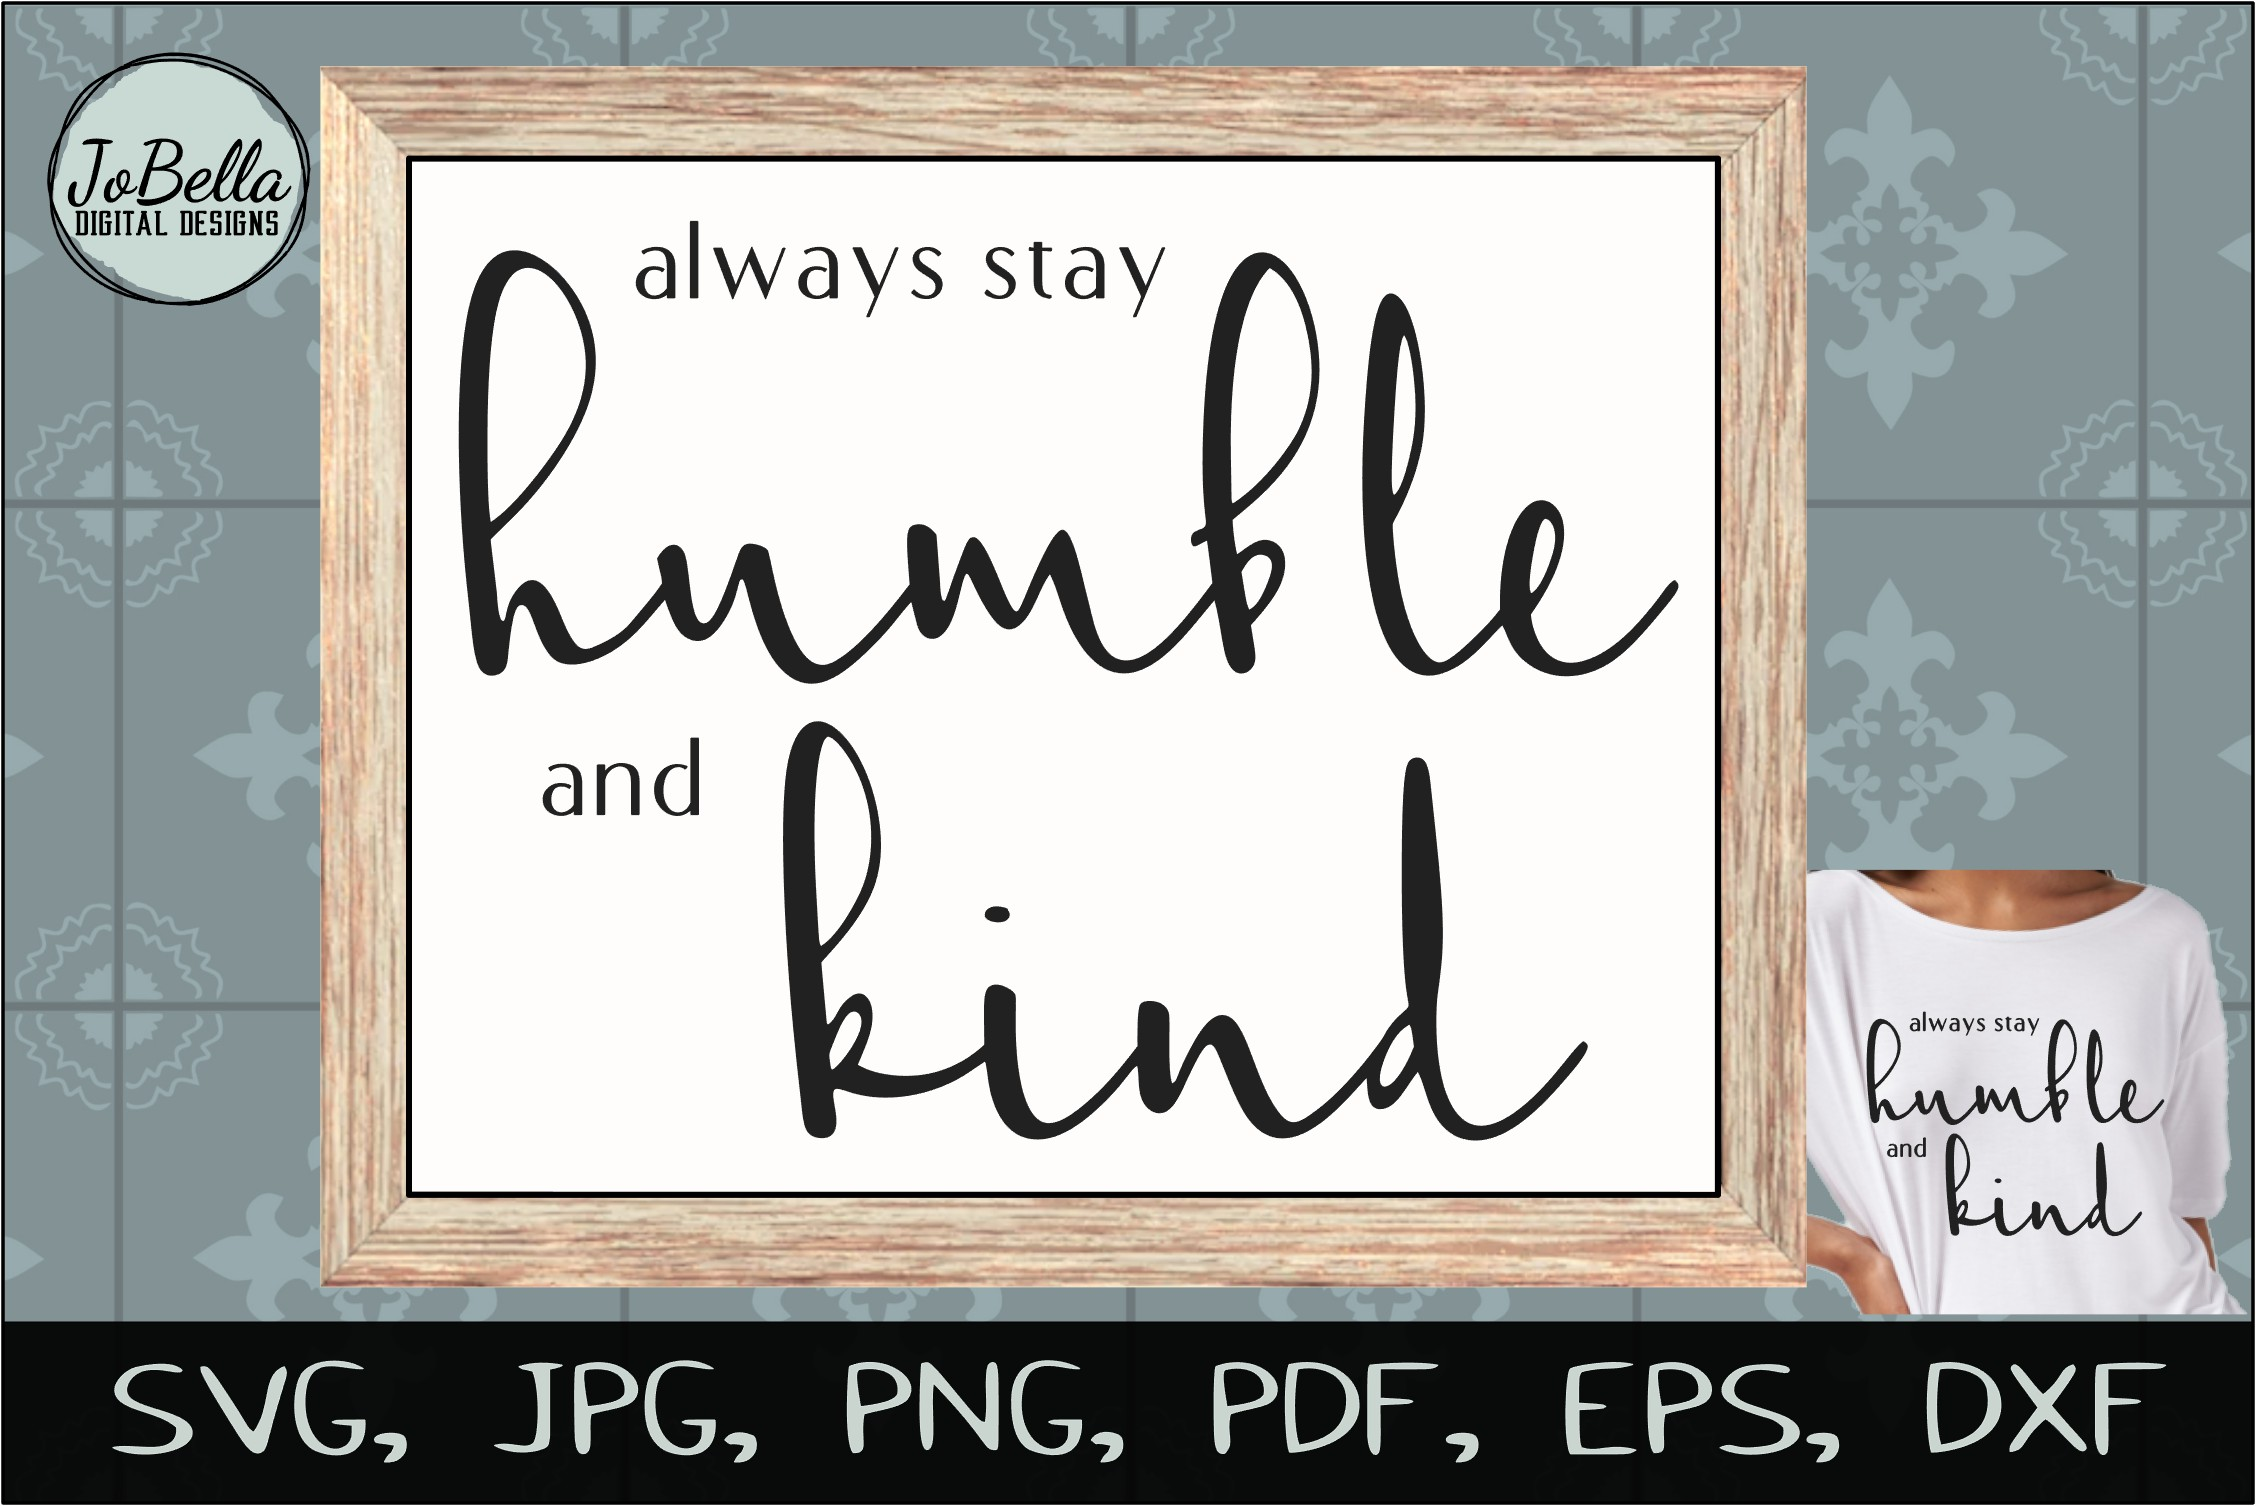 Always Stay Humble and Kind SVG, Sublimation PNG & Printable example image 1